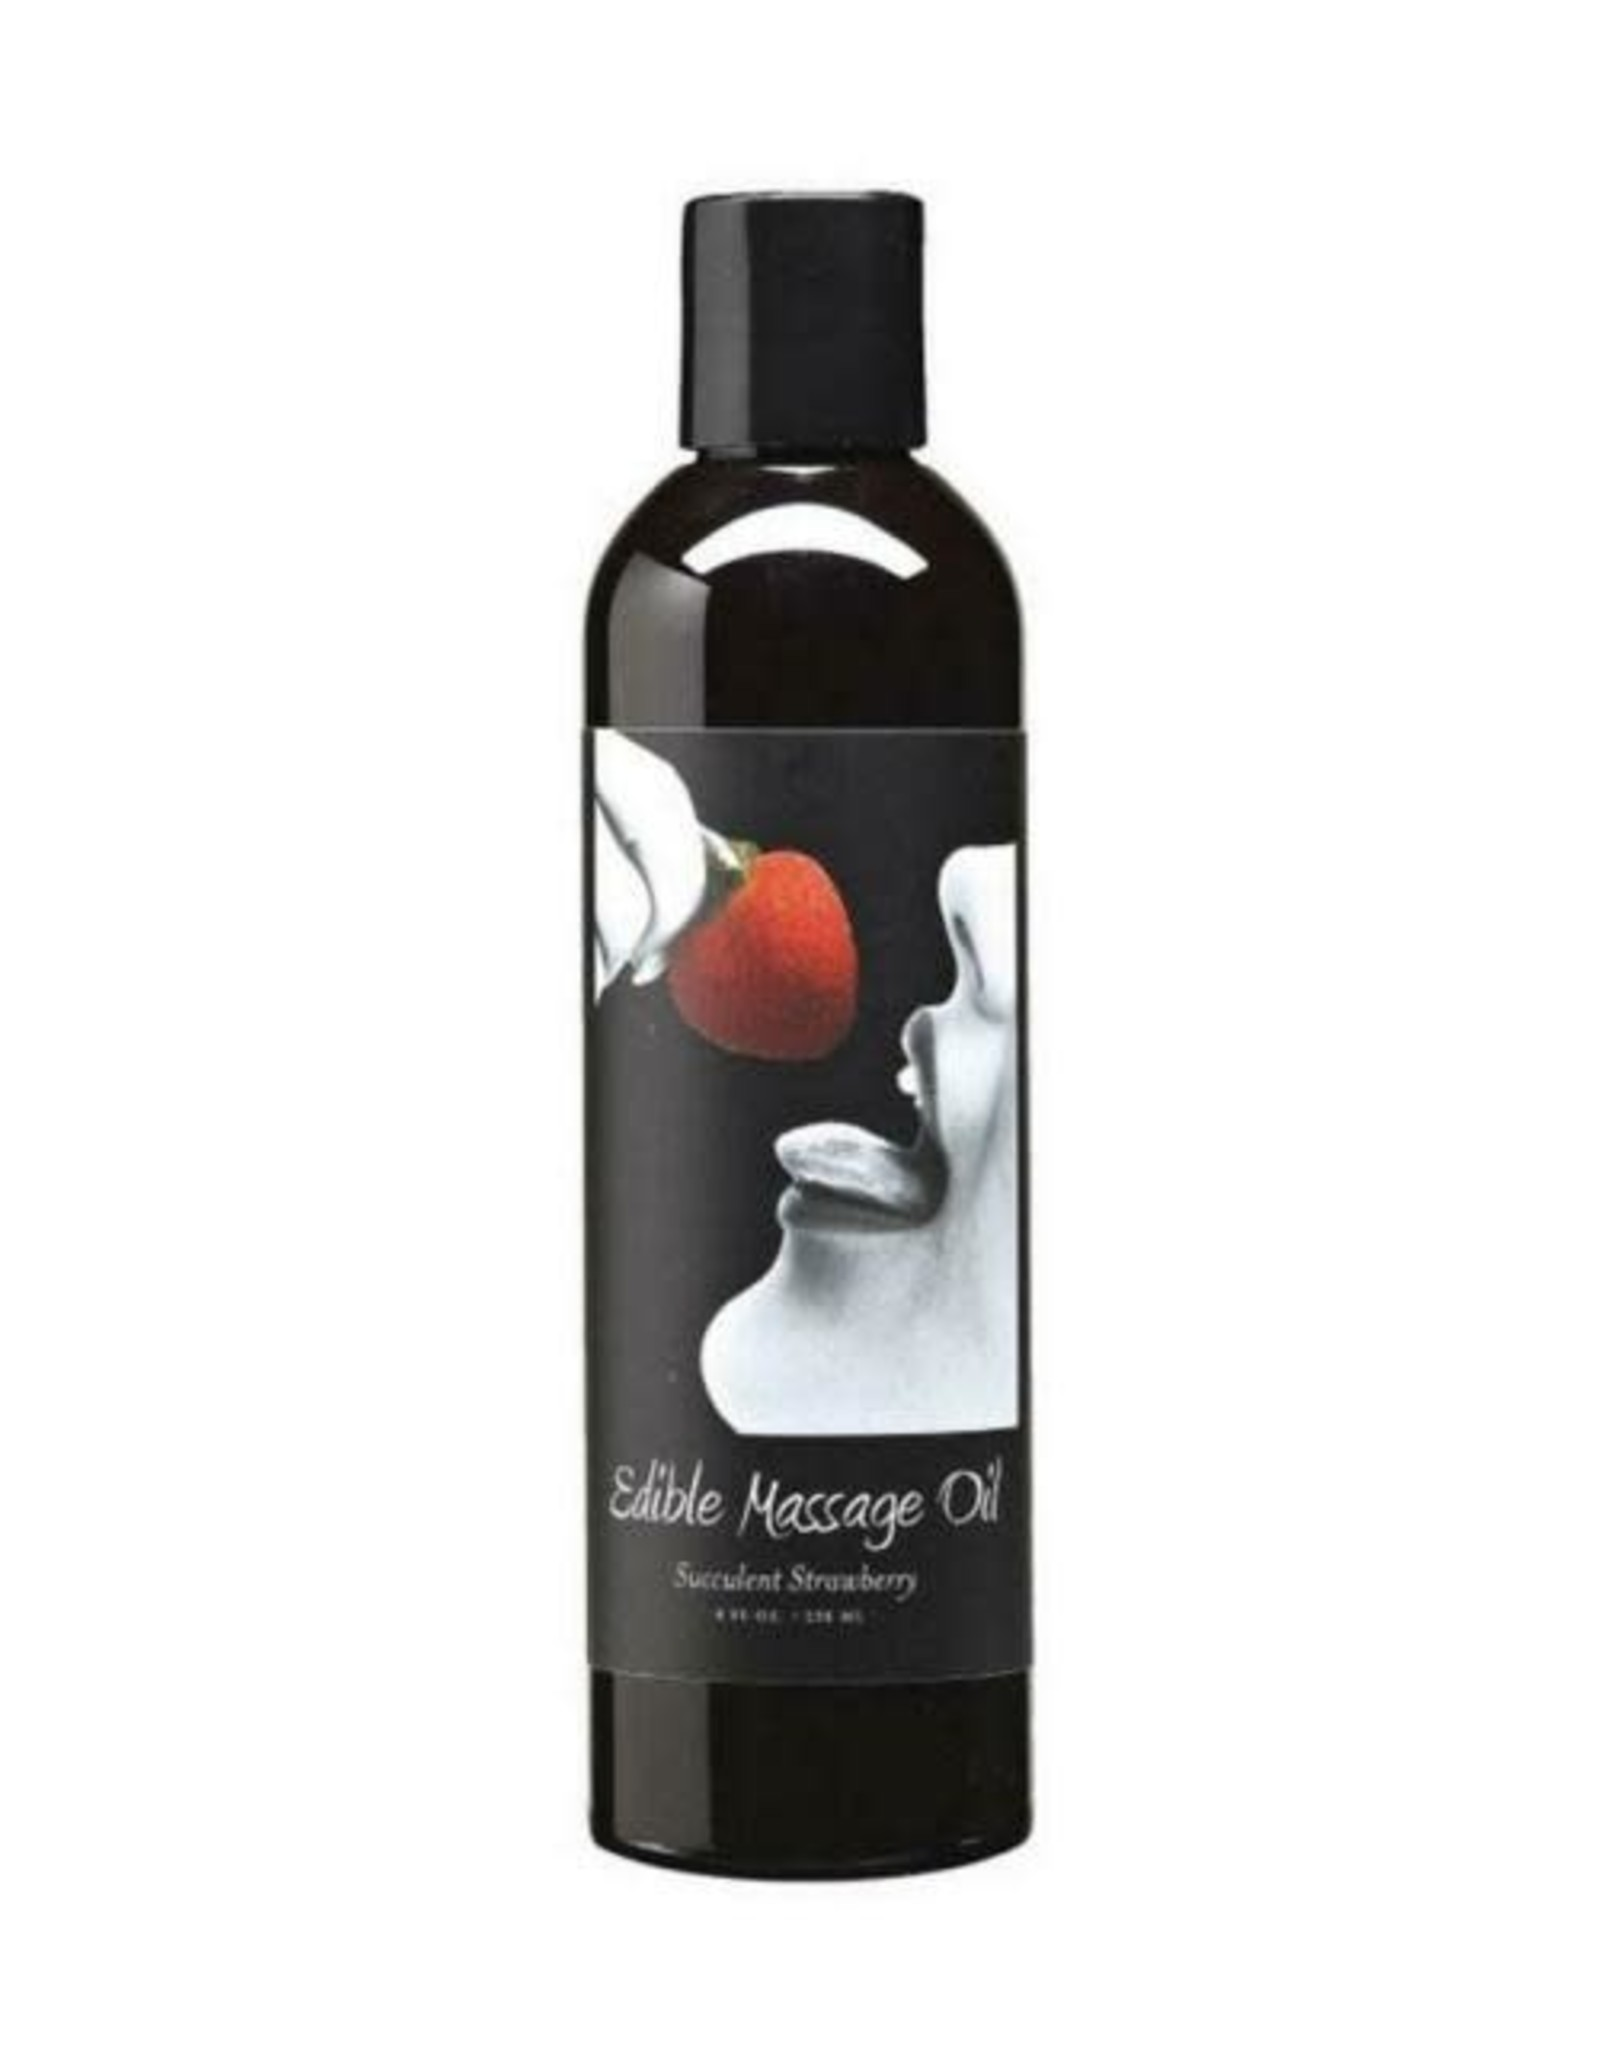 EARTHLY BODY Edible Massage Oil 8oz  Strawberry